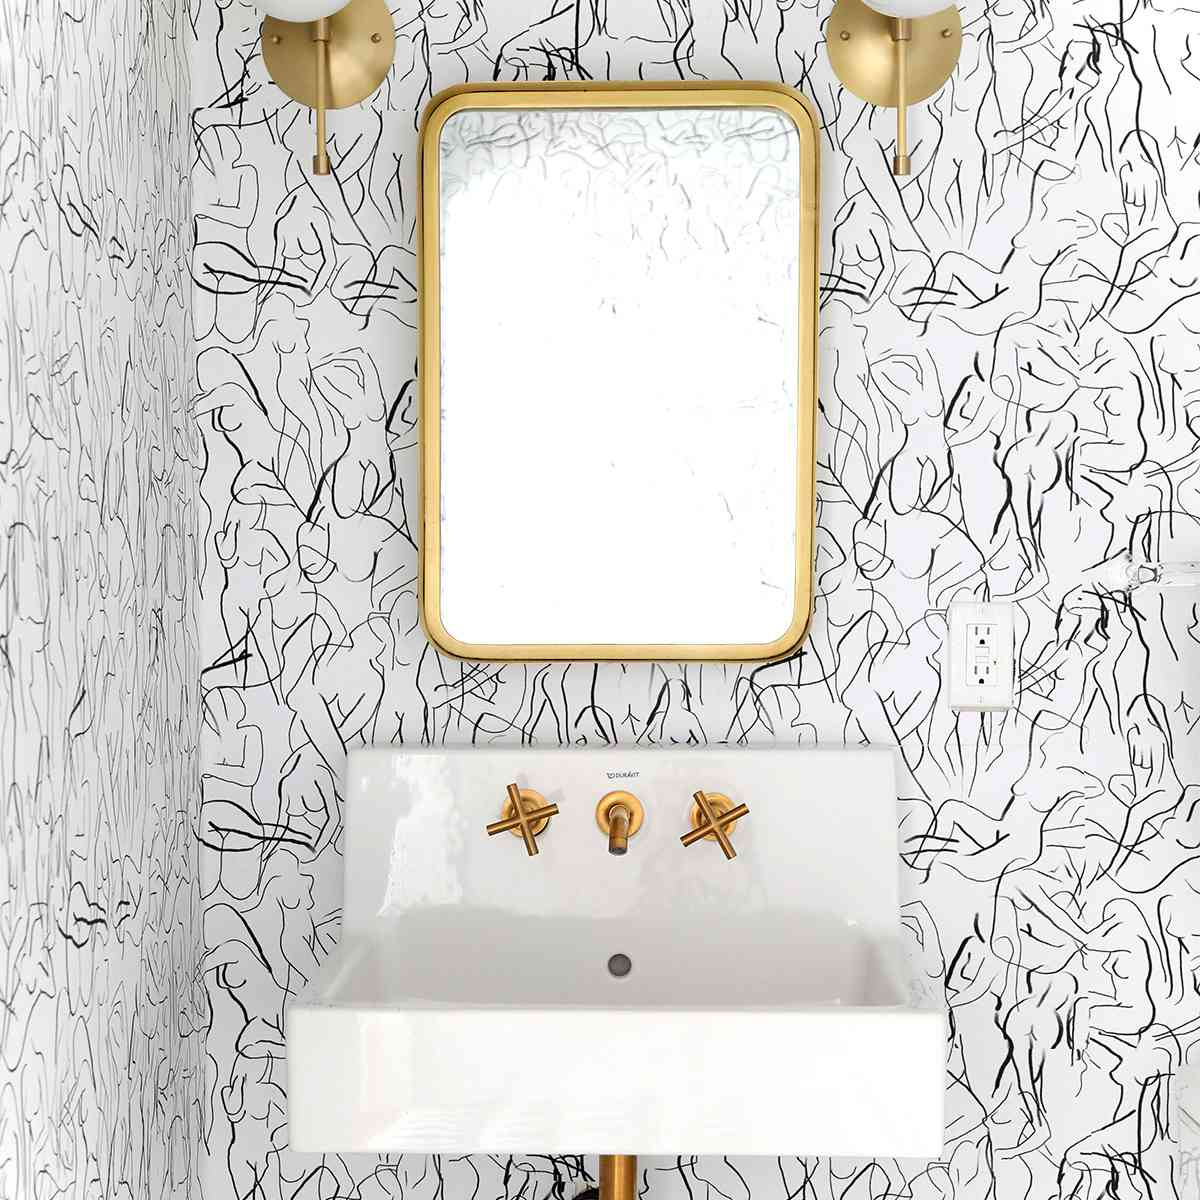 Bathroom with body wallpaper